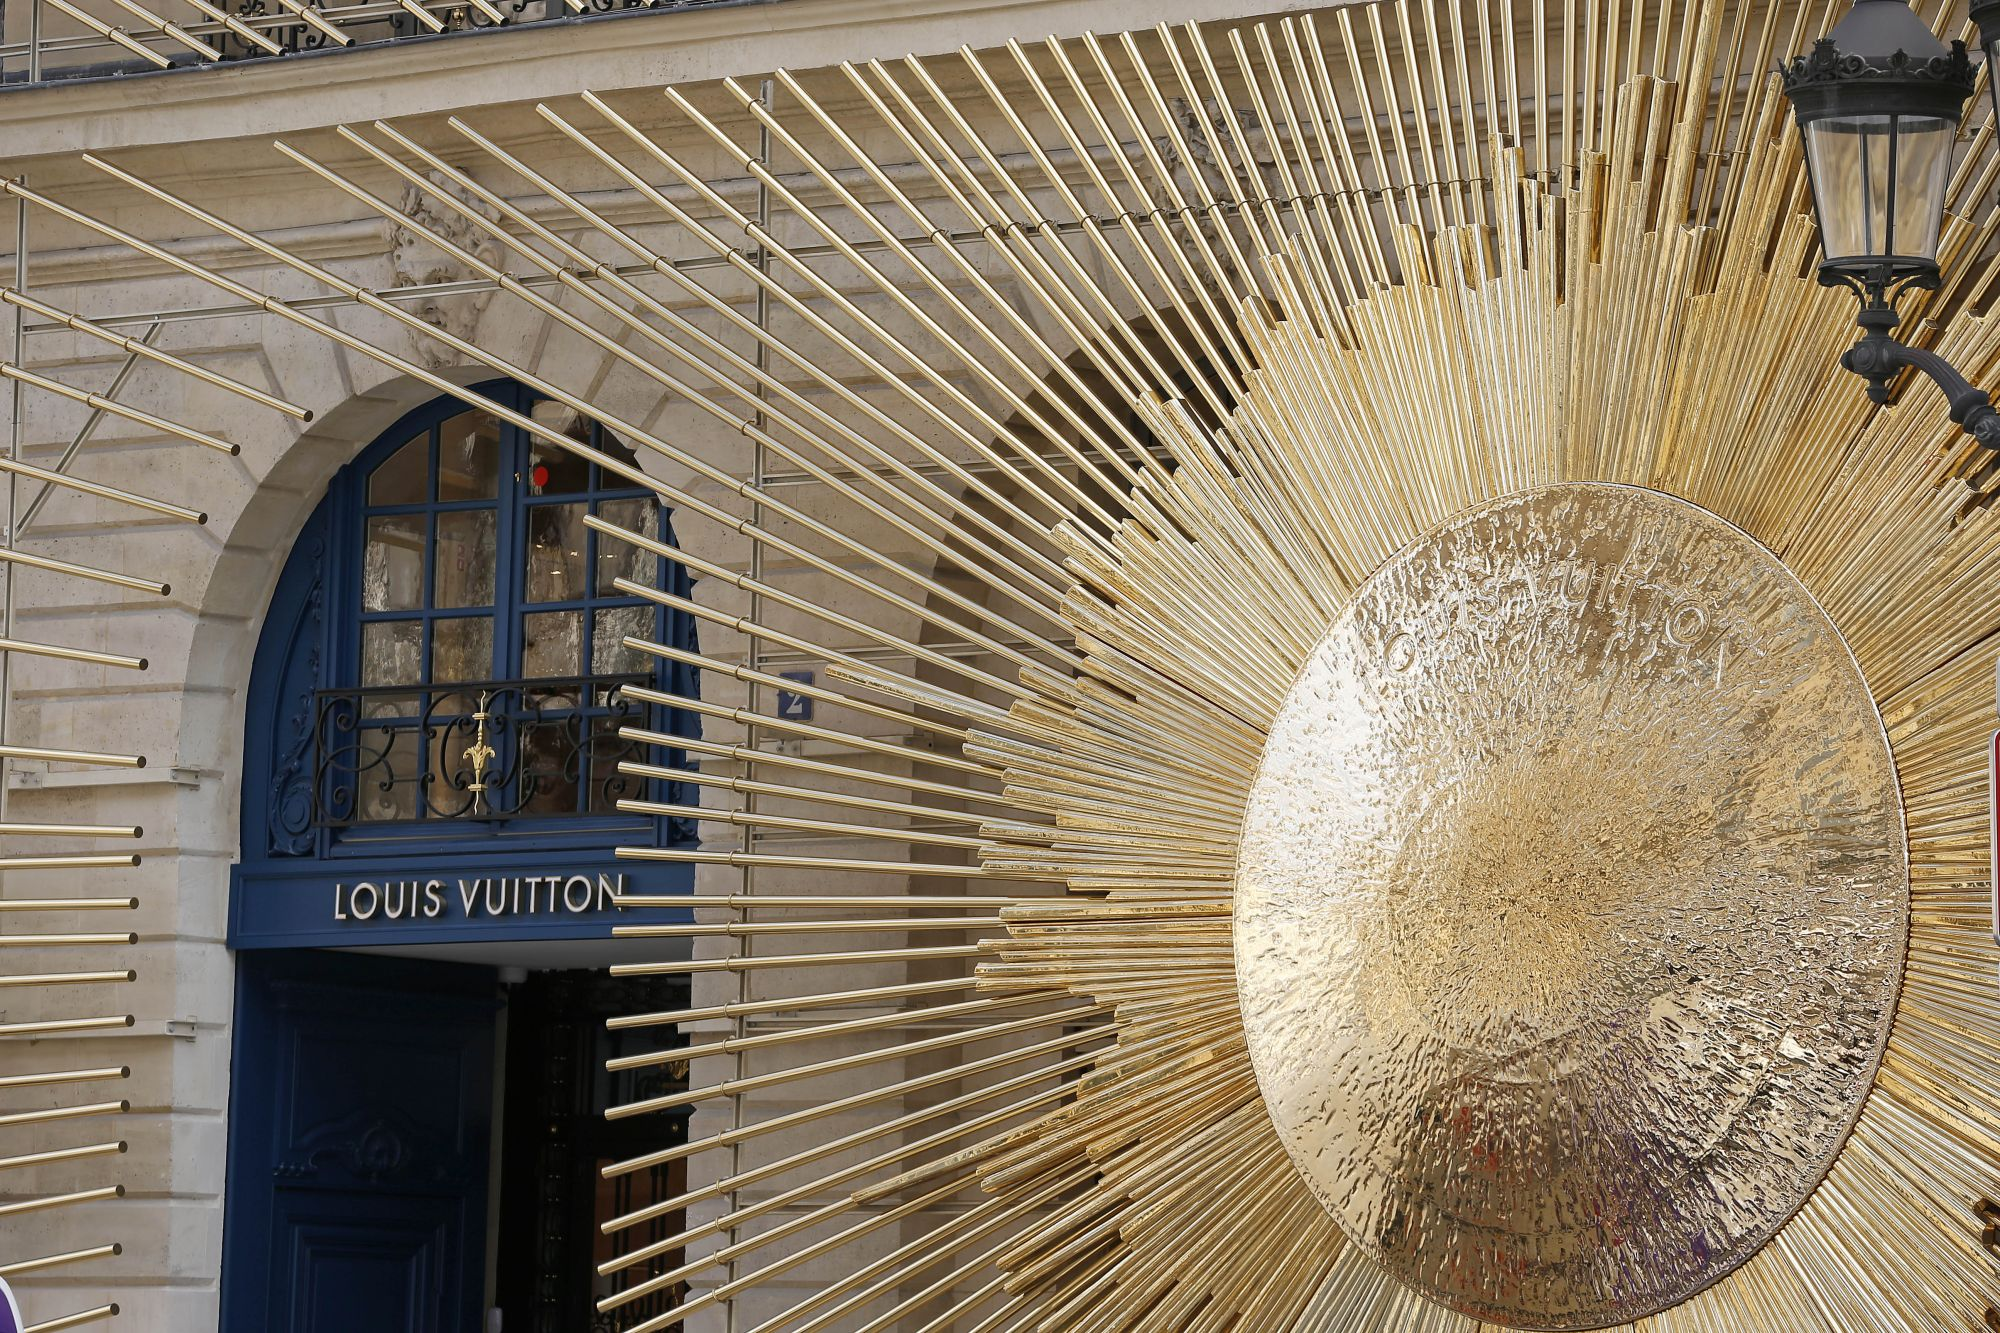 PARIS, FRANCE - OCTOBER 11:  Louis Vuitton's New Boutique is seen at Place Vendome on October 11, 2017 in Paris, France. The opening of this new boutique of the luxury brand Louis Vuitton marks a return to origins, where the founder Louis Vuitton opened his first store more than 160 years ago in this neighborhood.  (Photo by Chesnot/Getty Images)